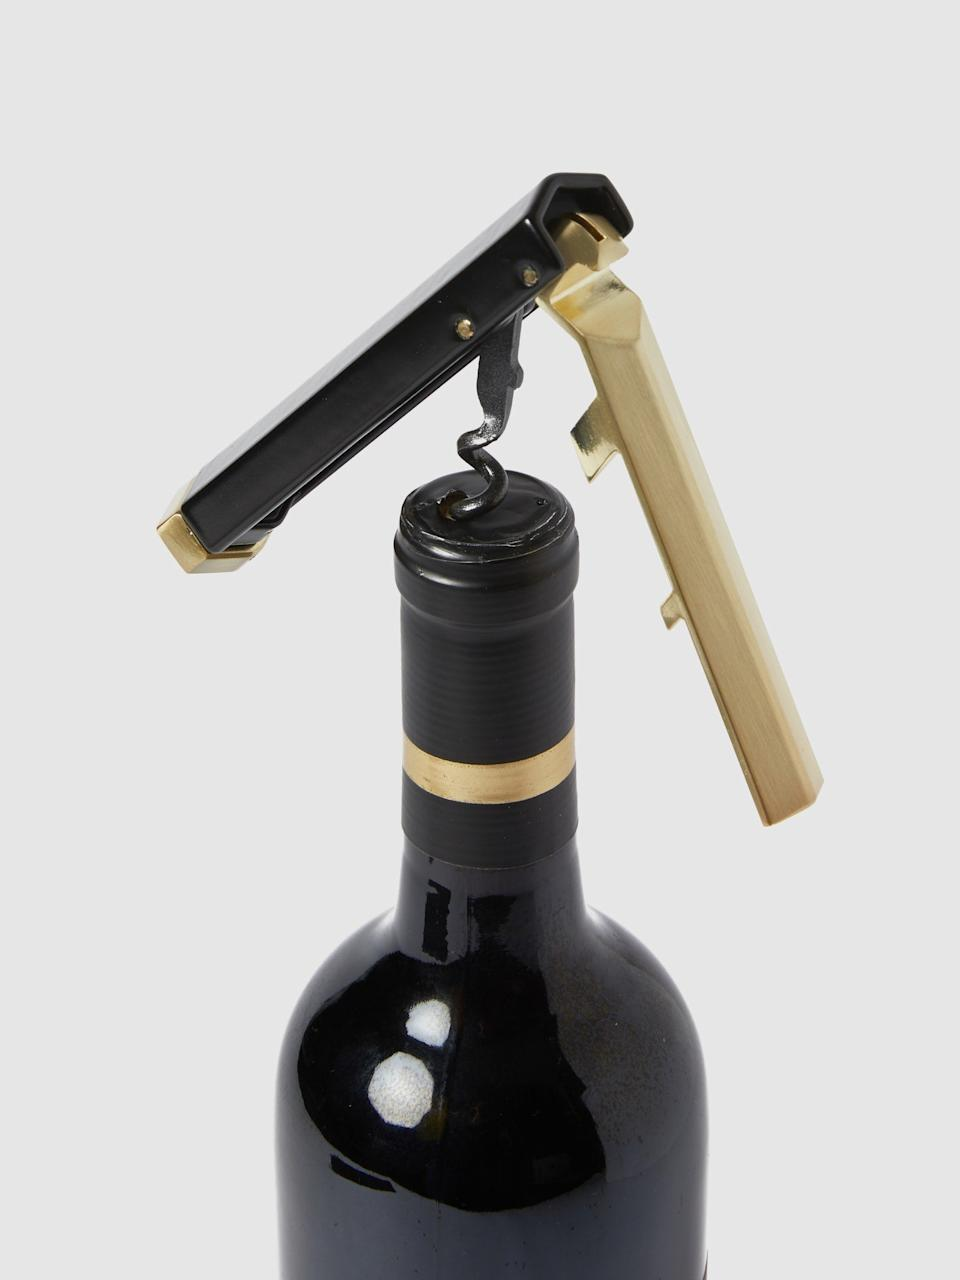 """<h3>RBT Waiter's Corkscrew</h3><br>Who doesn't appreciate a nice glass of wine? According to Stardust, a fancy bottle opener is just the kind of gift that Virgos will enjoy every time they enjoy a bottle during an at-home happy hour on the fire escape.<br><br><strong>RBT</strong> Waiter's Corkscrew, $, available at <a href=""""https://go.skimresources.com/?id=30283X879131&url=https%3A%2F%2Fwww.verishop.com%2Frbt%2Fcorkscrew%2Fwaiters-corkscrew%2Fp4361052749847%3Fvariant_id%3D31200176242711"""" rel=""""nofollow noopener"""" target=""""_blank"""" data-ylk=""""slk:Verishop"""" class=""""link rapid-noclick-resp"""">Verishop</a>"""